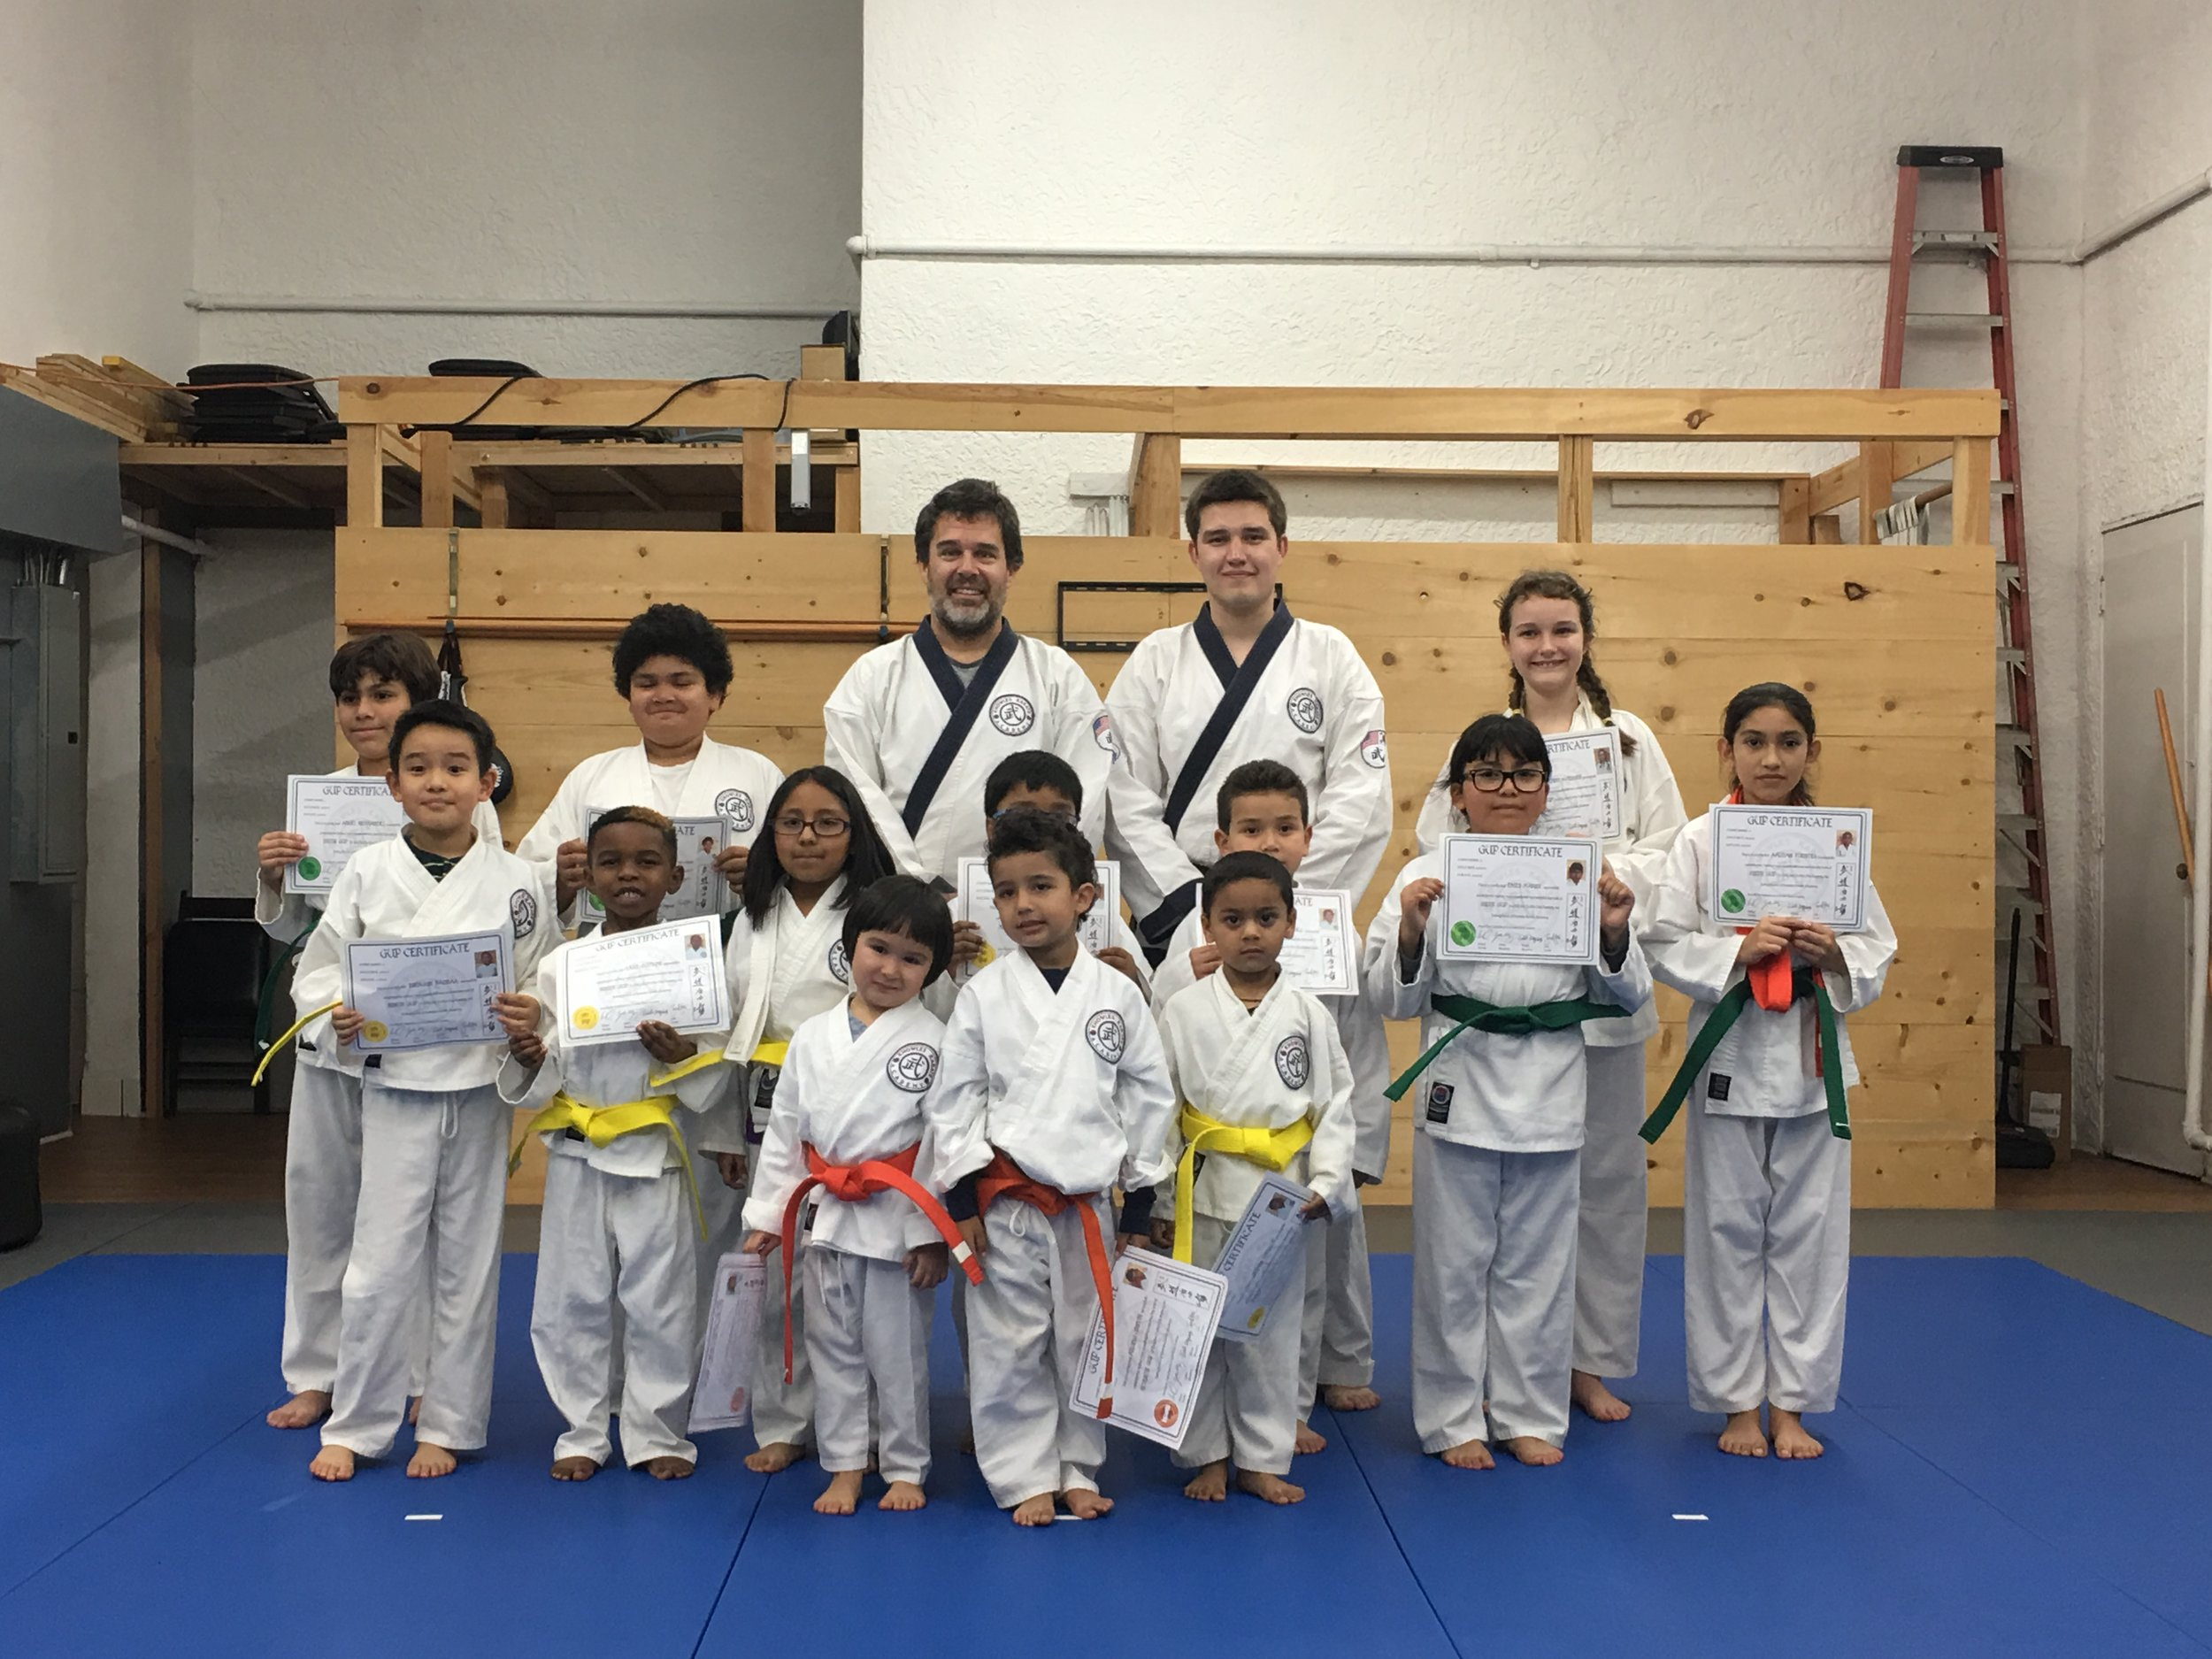 Kids Belt Ceremony - congratulations!